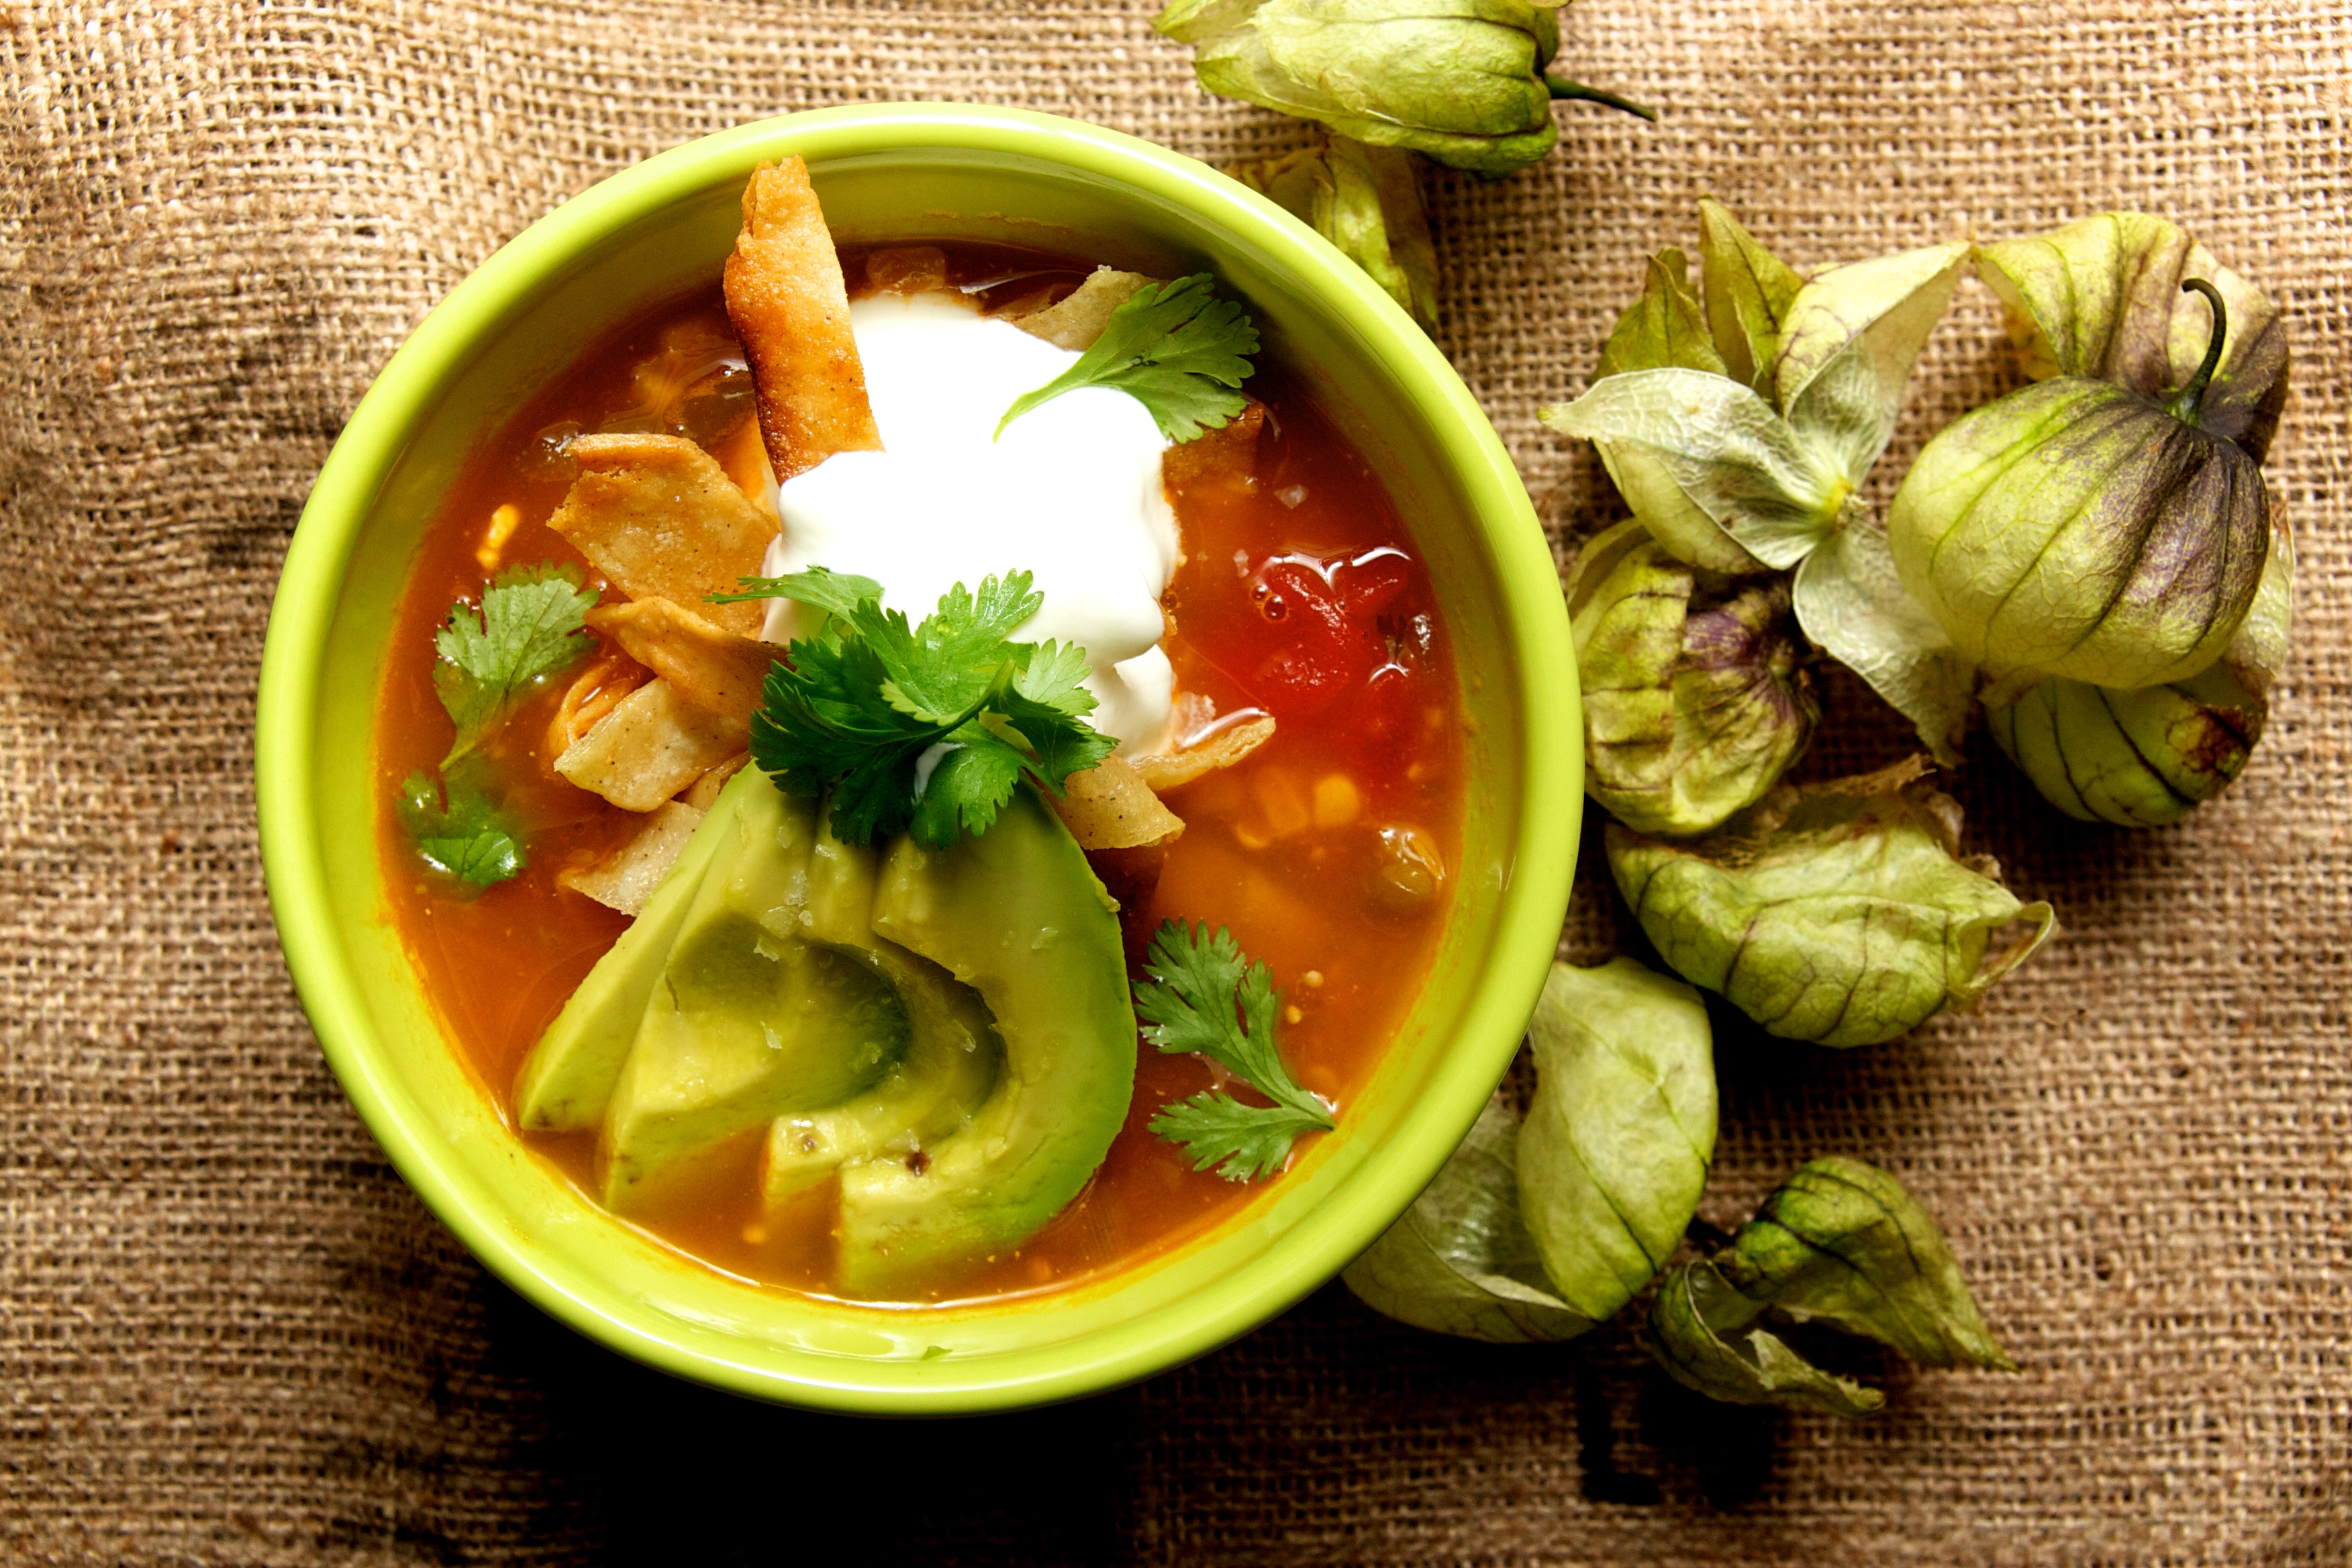 Tomatillo Soup with Avocado and Lime